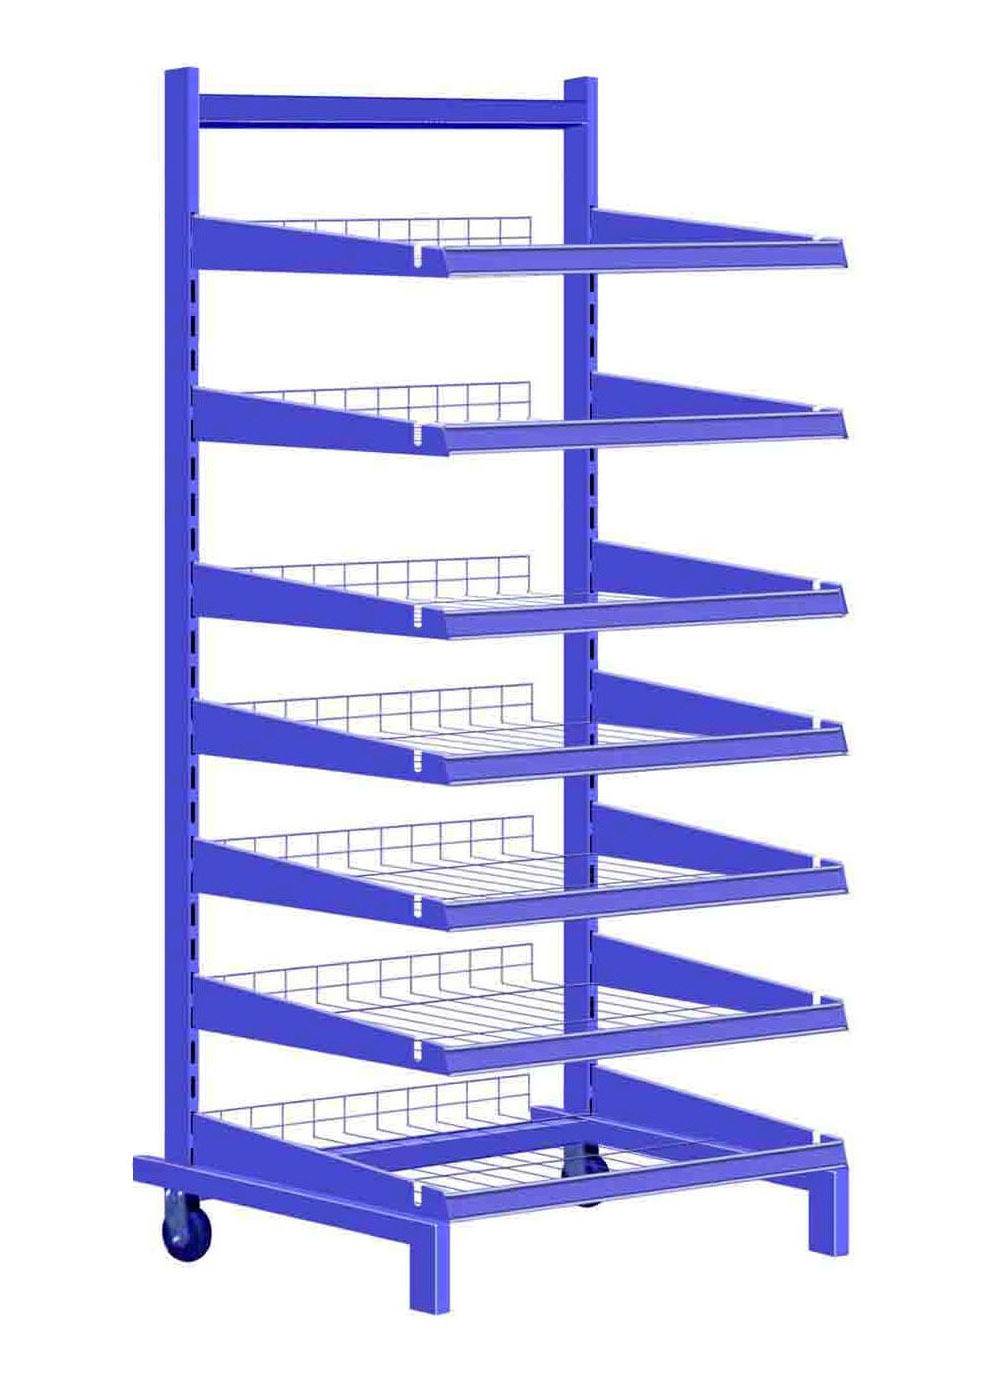 Exhibition Stand Hooks : China flooring store metal display racks